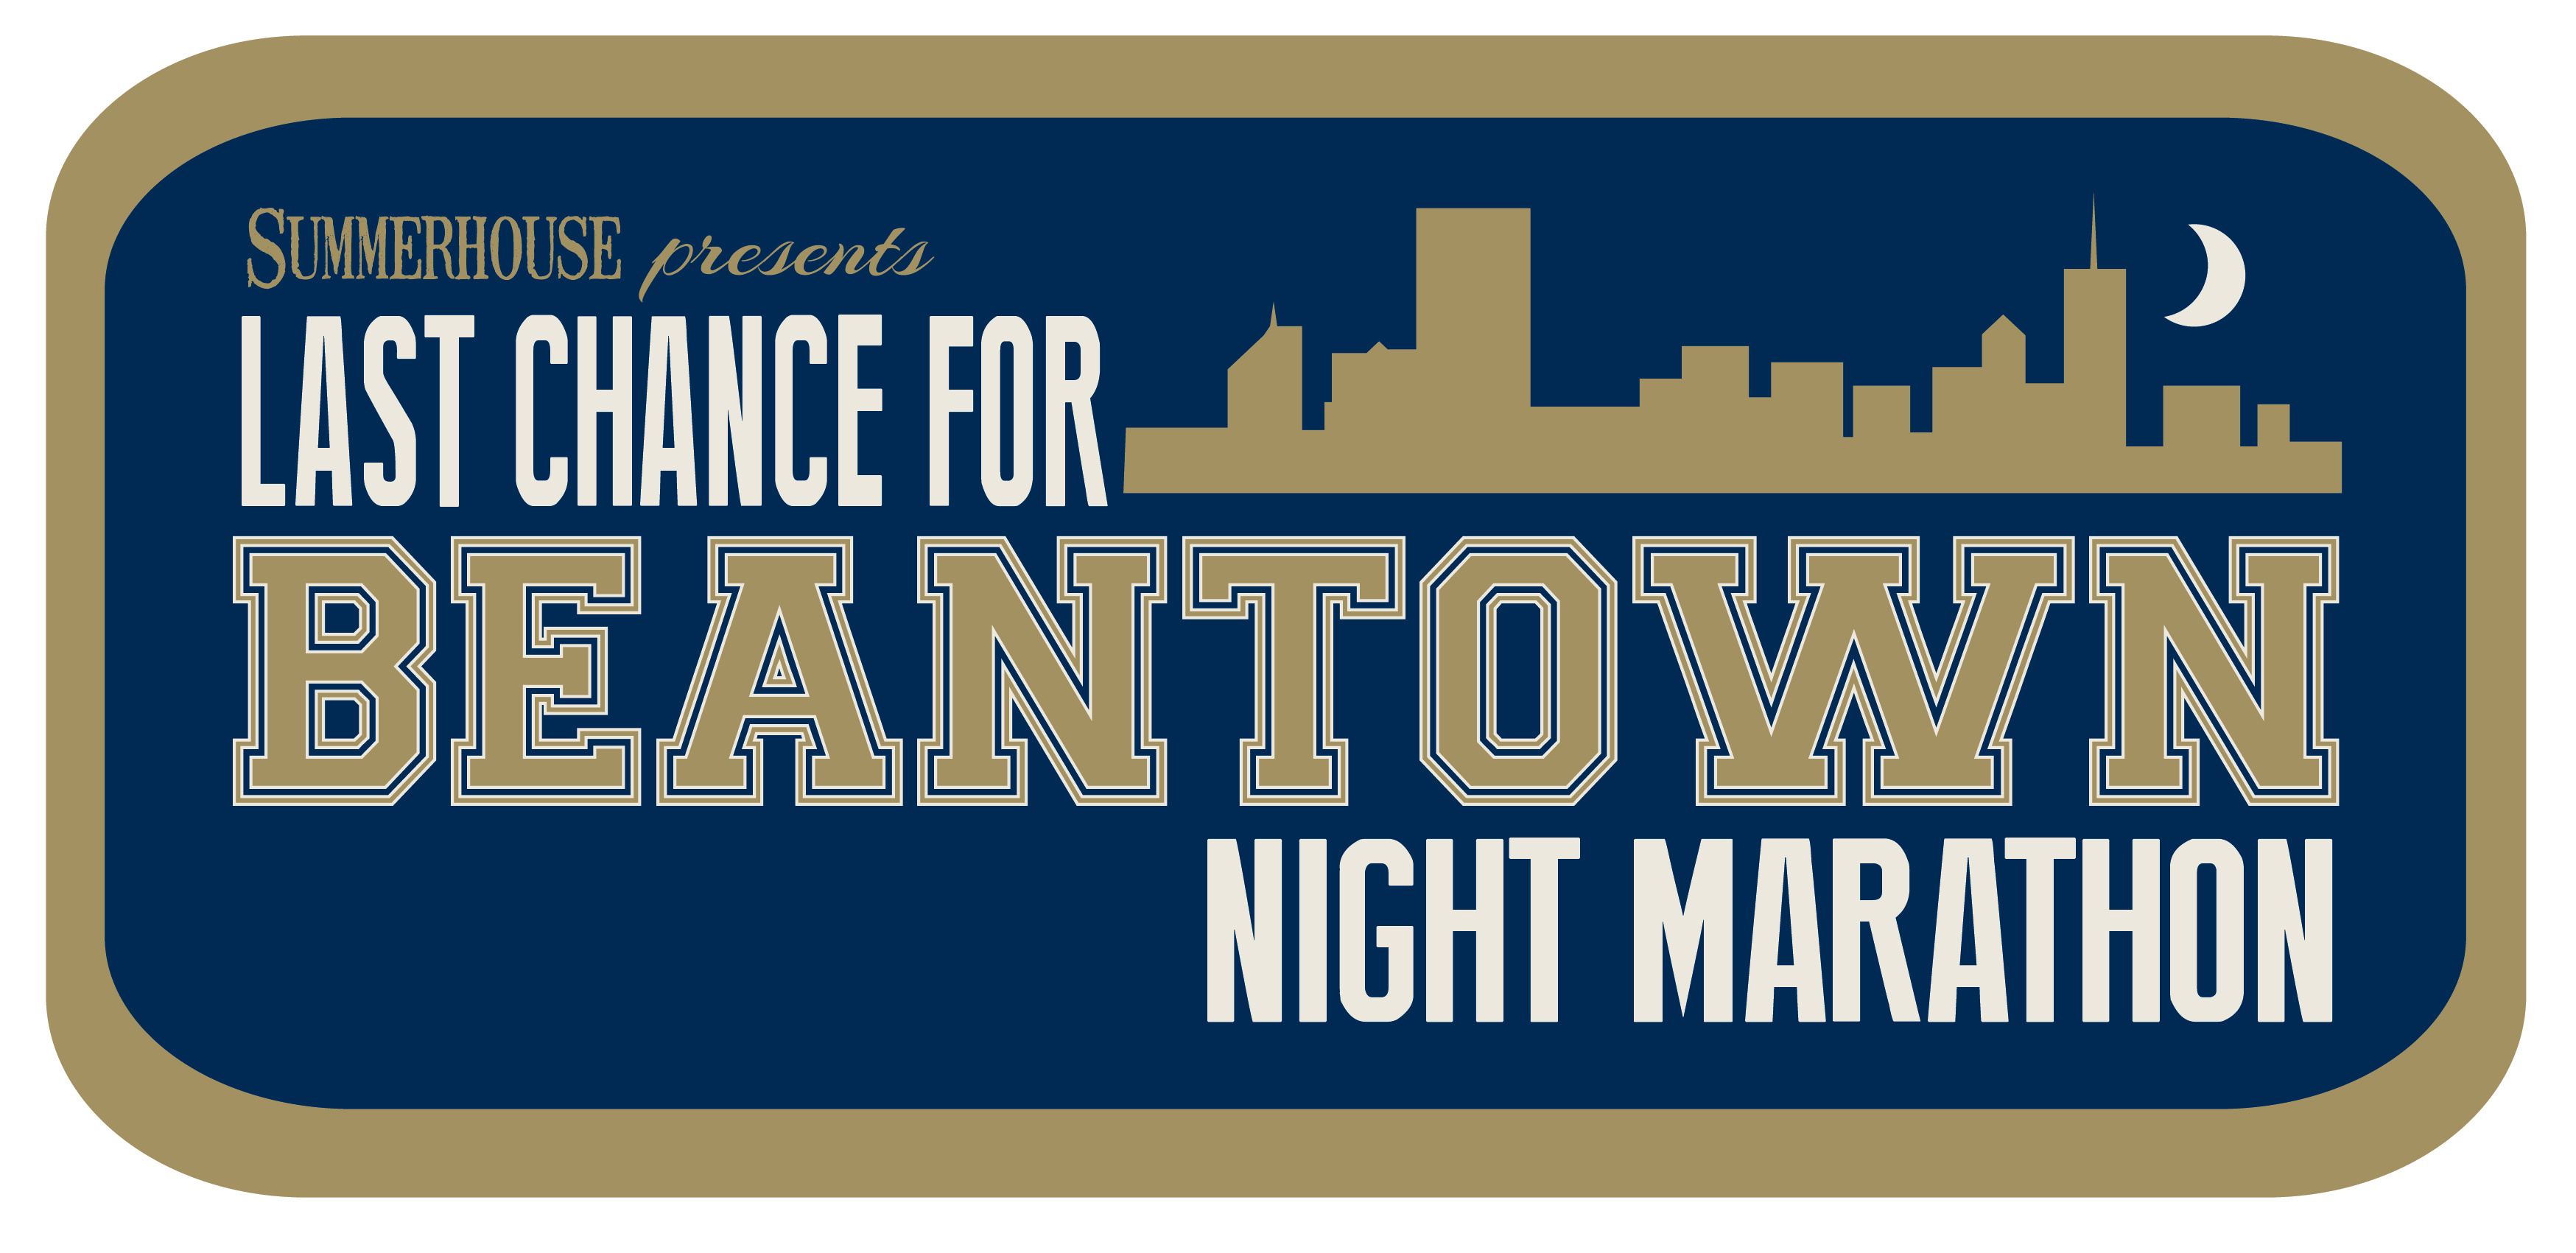 Last Chance for Beantown Marathon